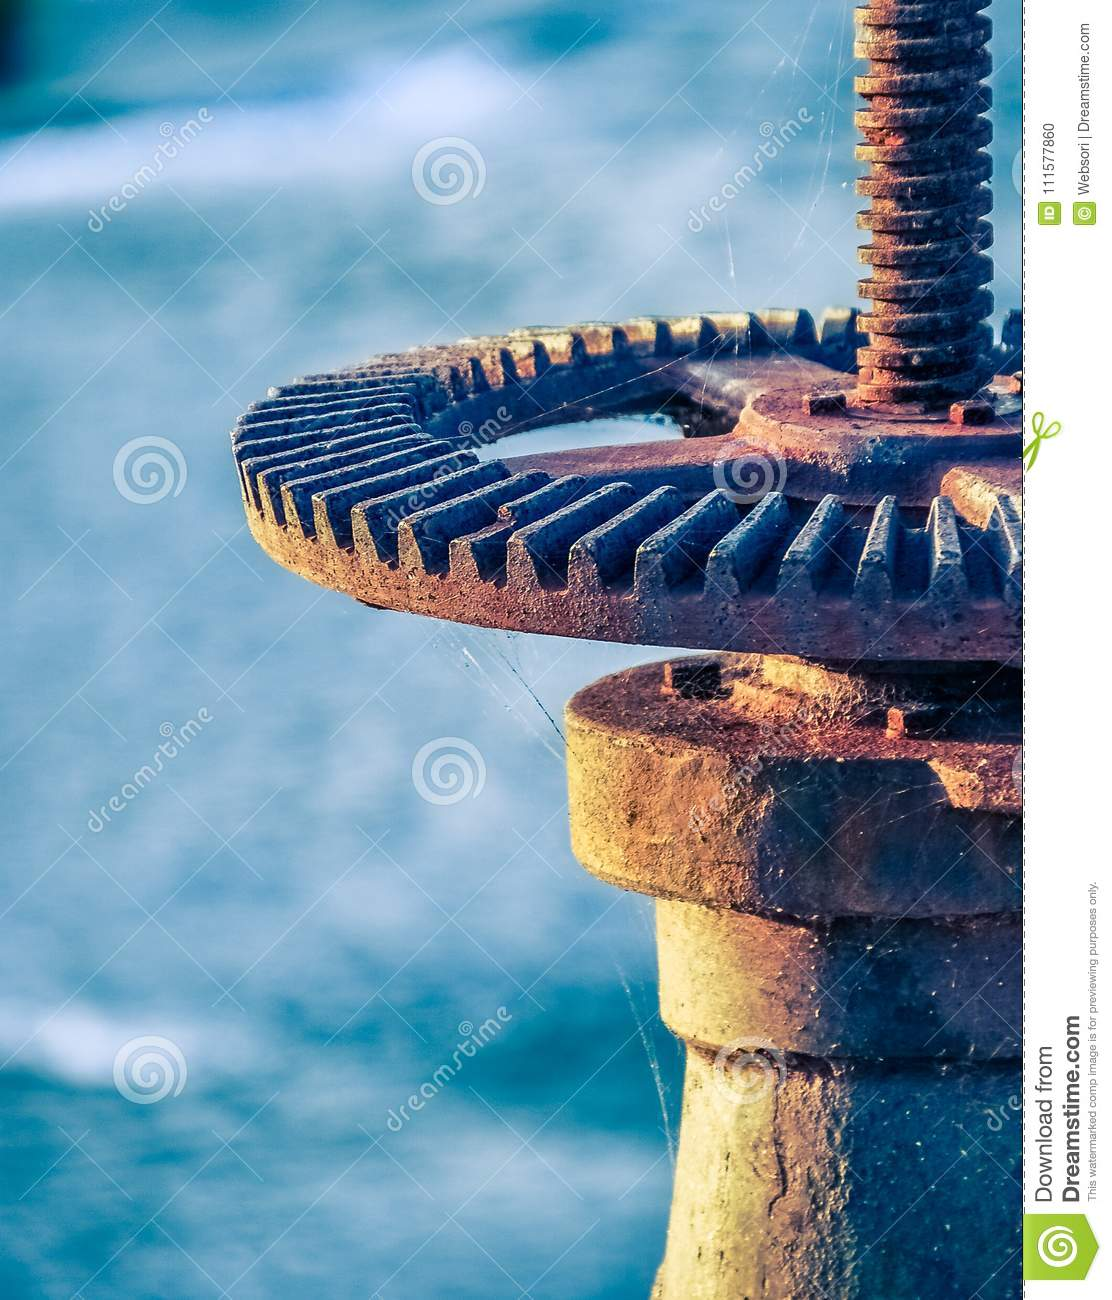 Rusty Wheel And Gear of Sluice Valve With Spider Web